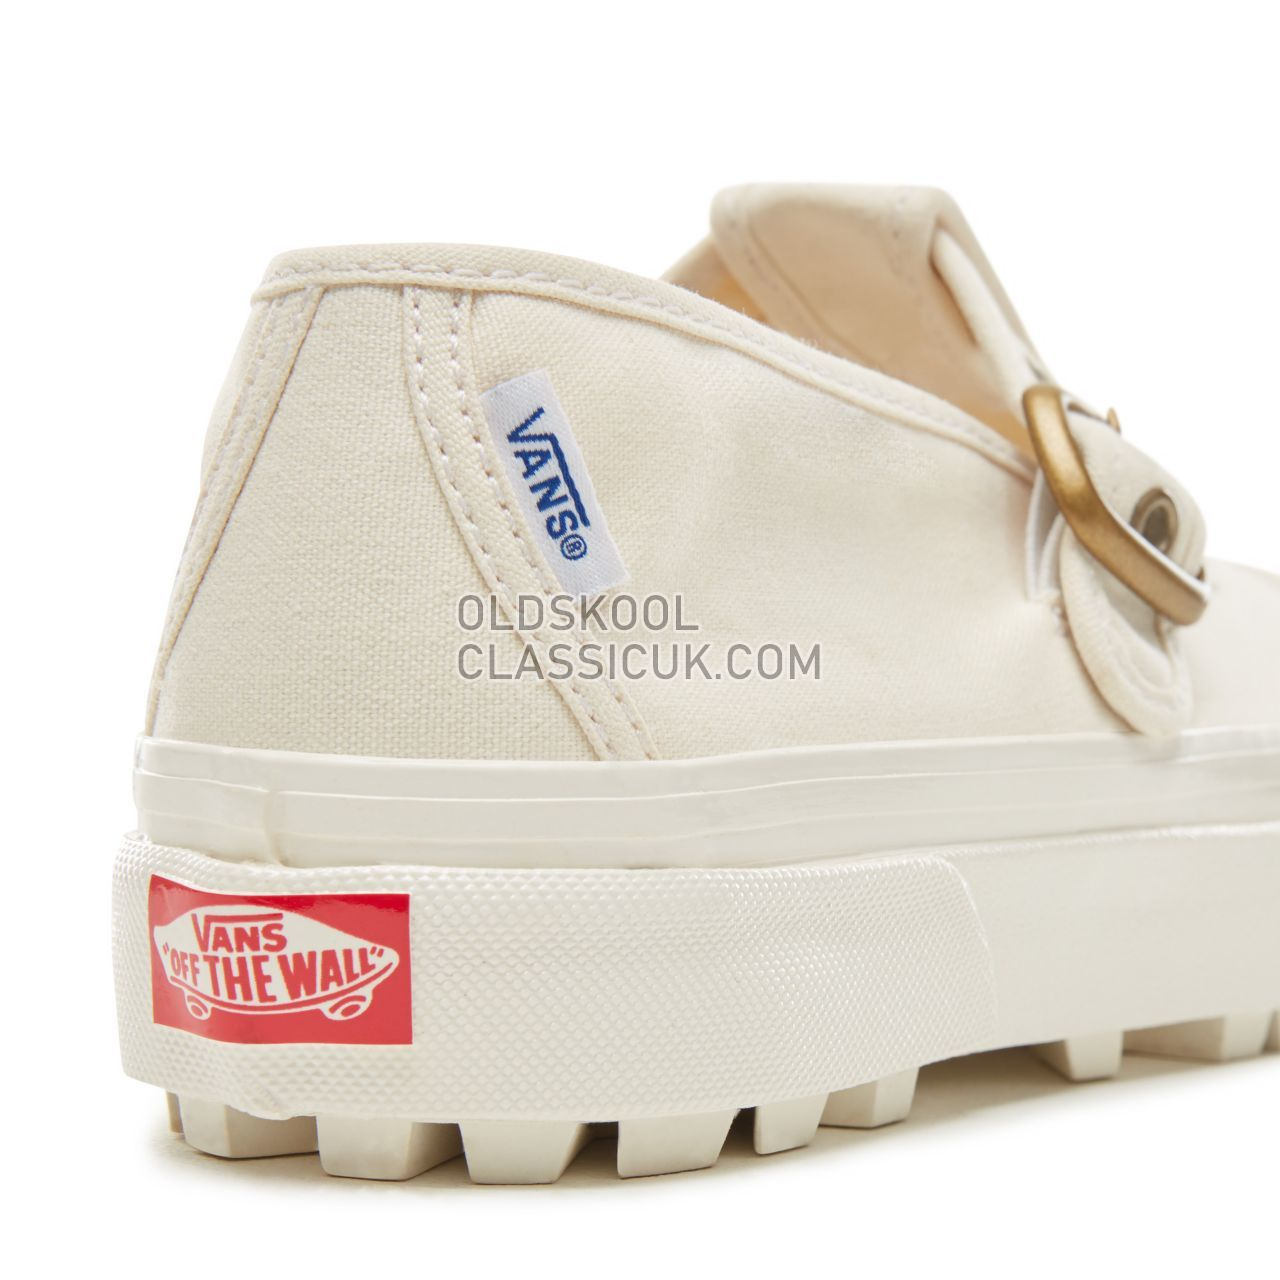 Vans Anaheim Factory Style 93 Sneakers Womens (Anaheim Factory) Og White VA3TKVQWP Shoes